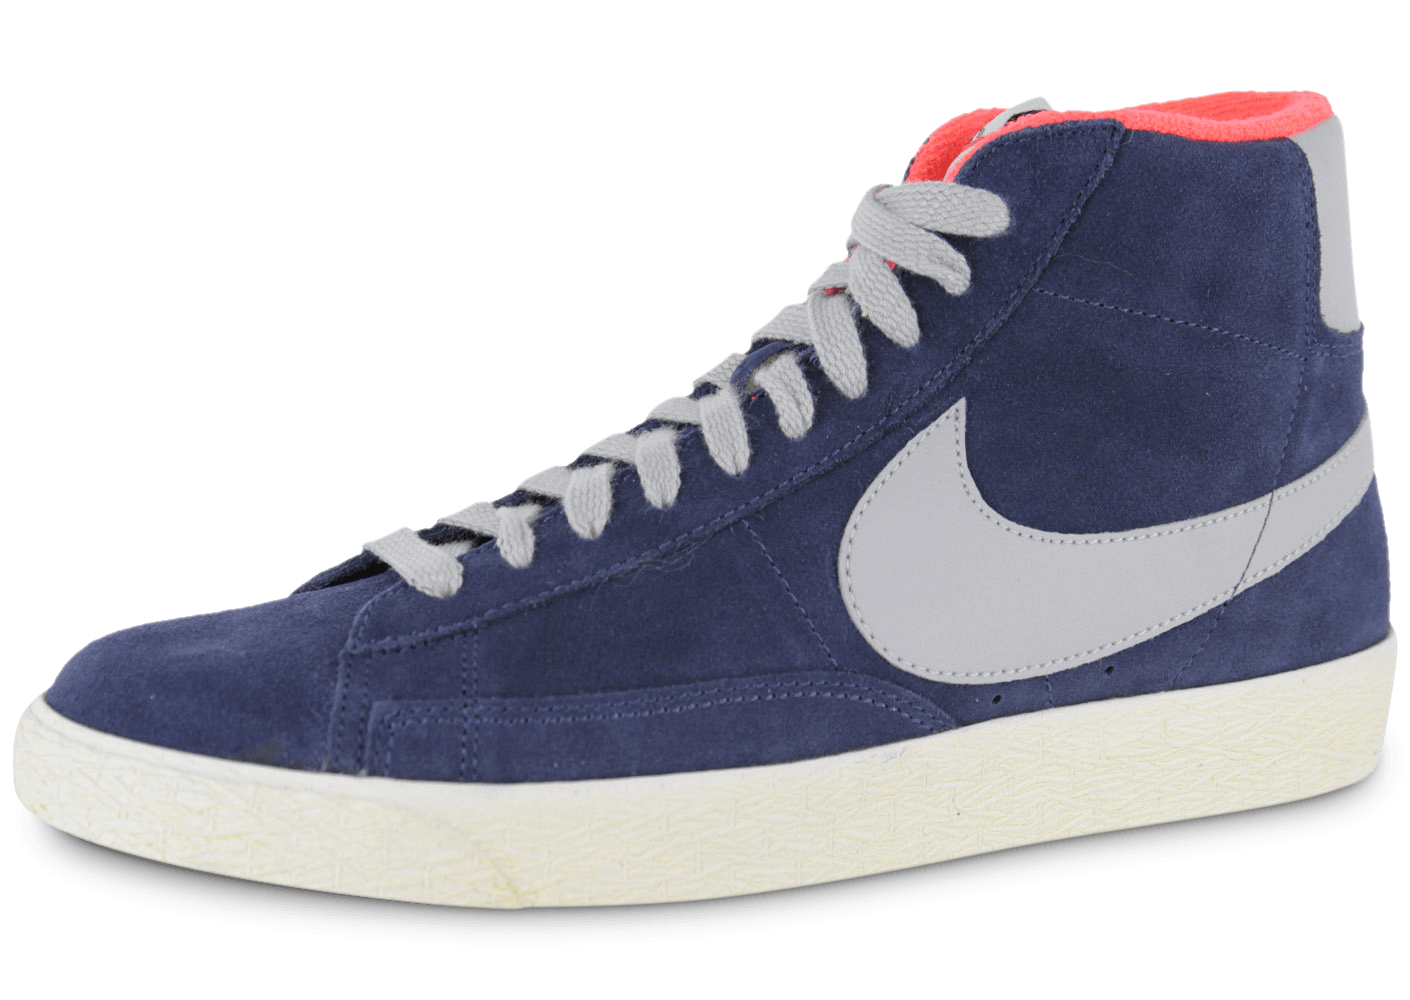 reputable site 27c13 6bd3f Nike Blazer Mid Bleu Marine - Chaussures Baskets homme - Cha